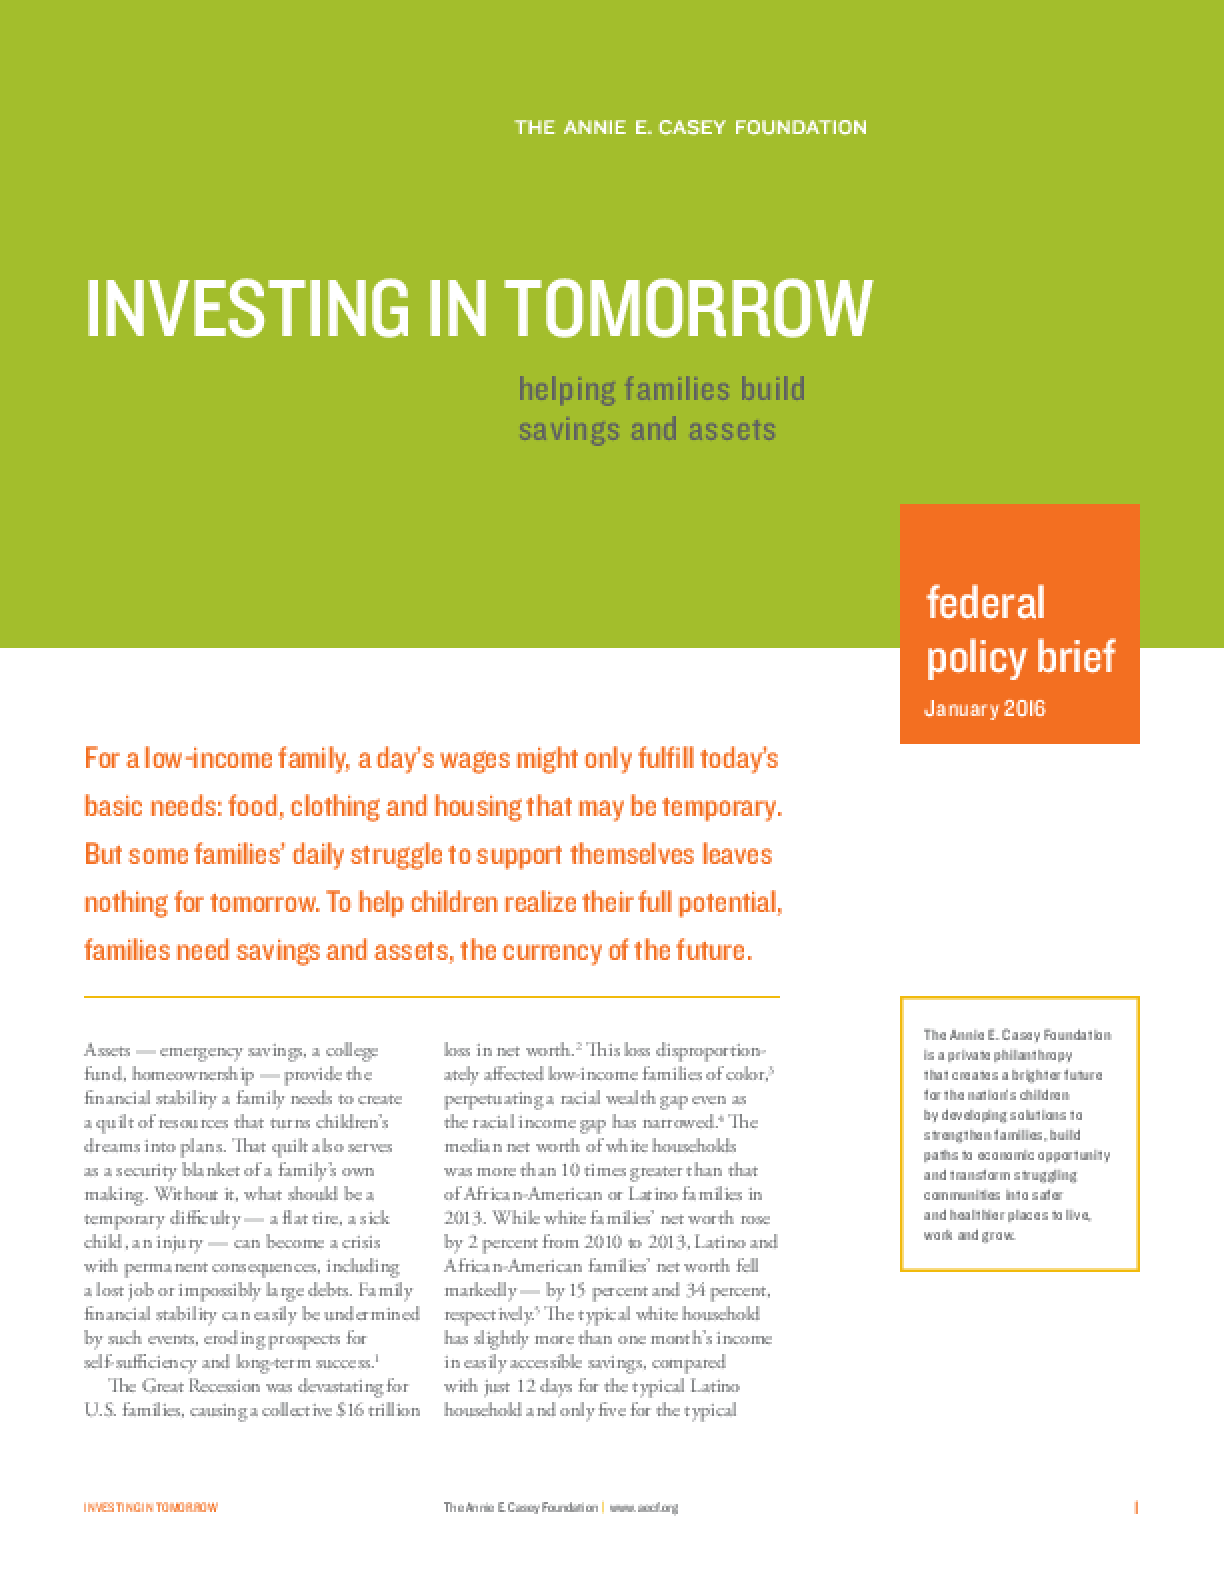 Investing in Tomorrow: Helping Families Build Savings and Assets